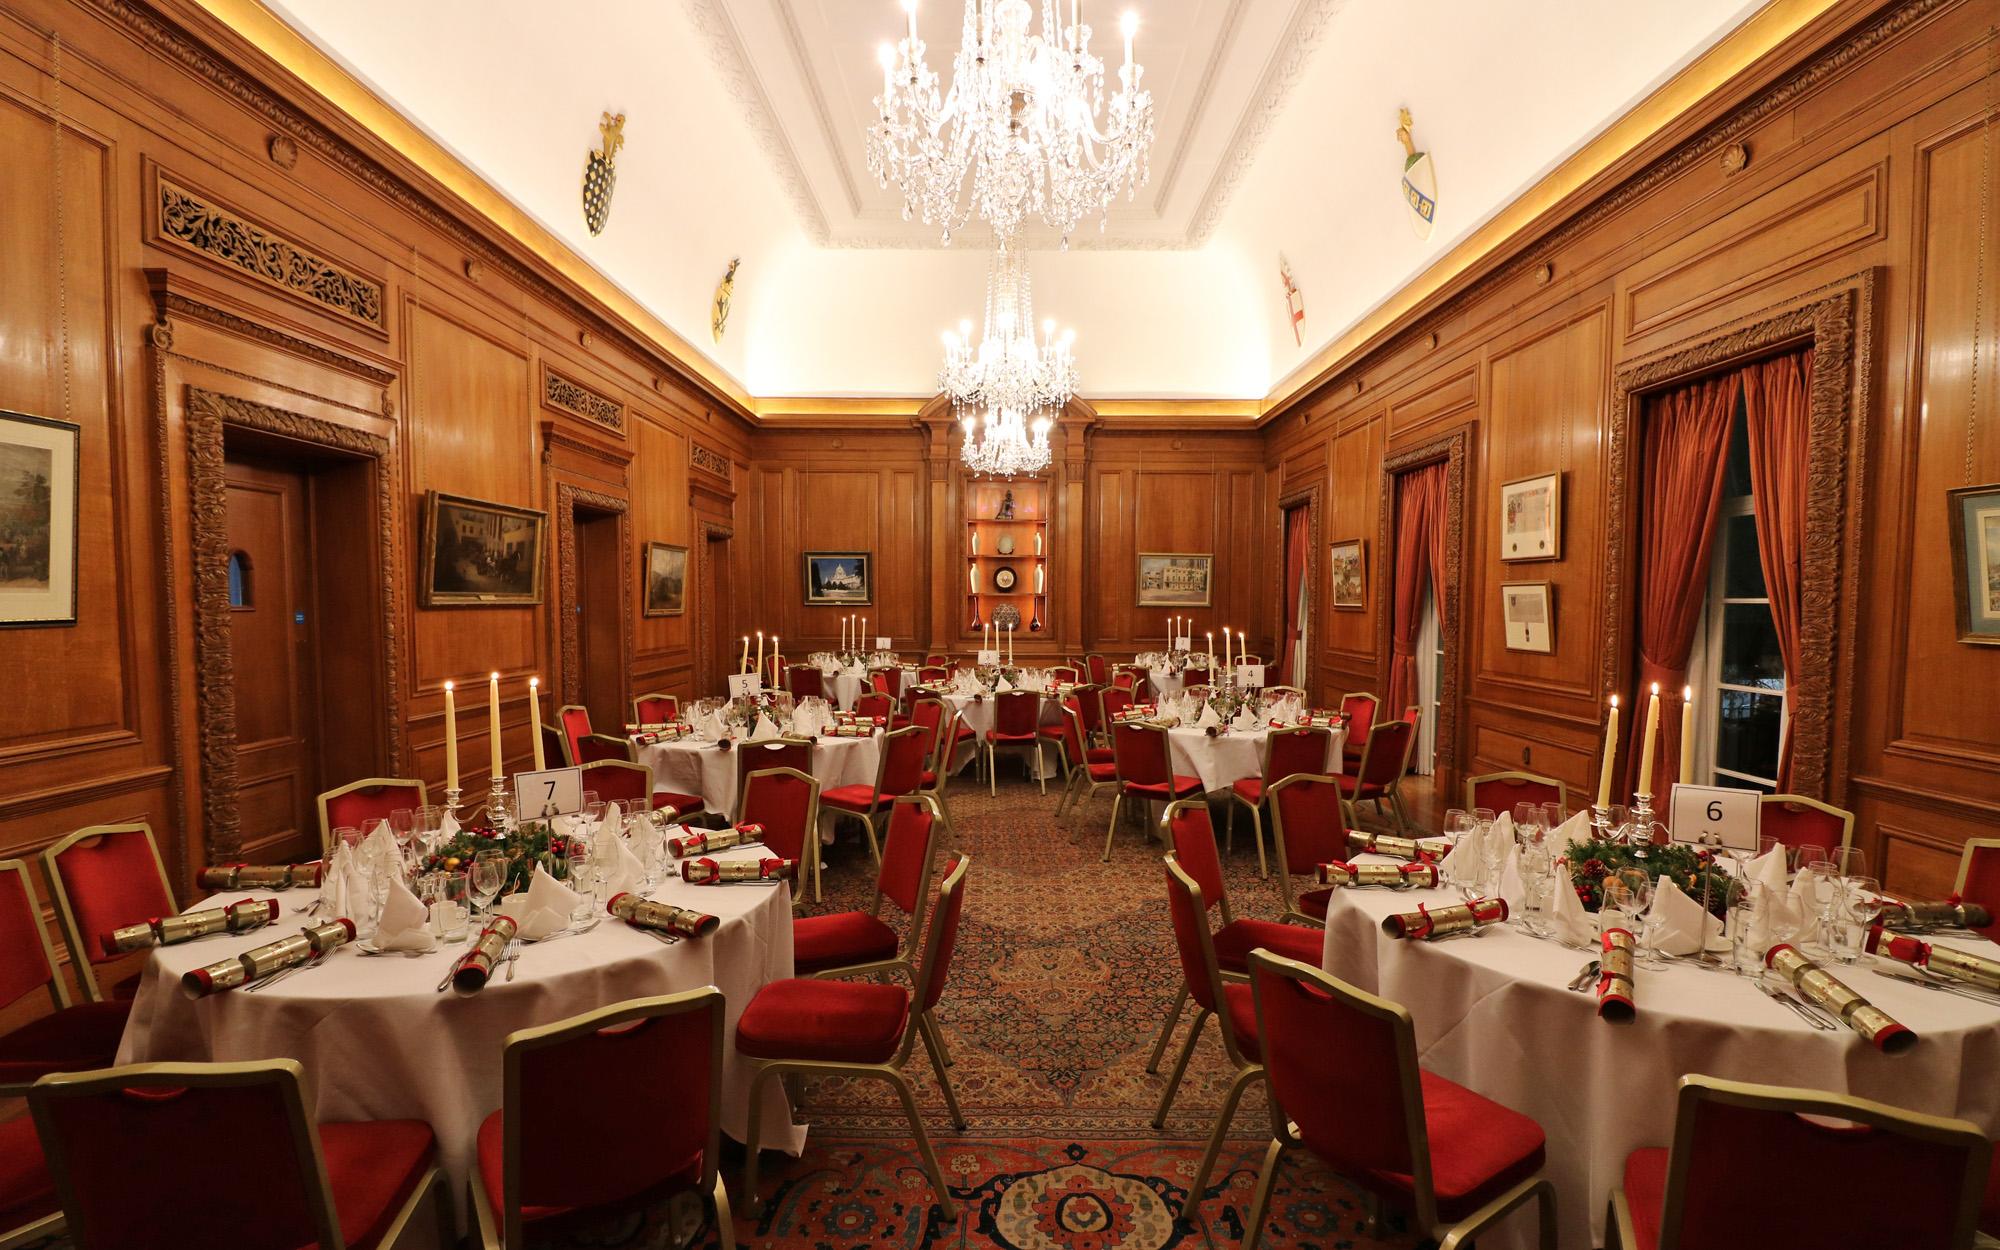 Brewers Hall london venues events christmas festive private hire corporate groups dining round tables